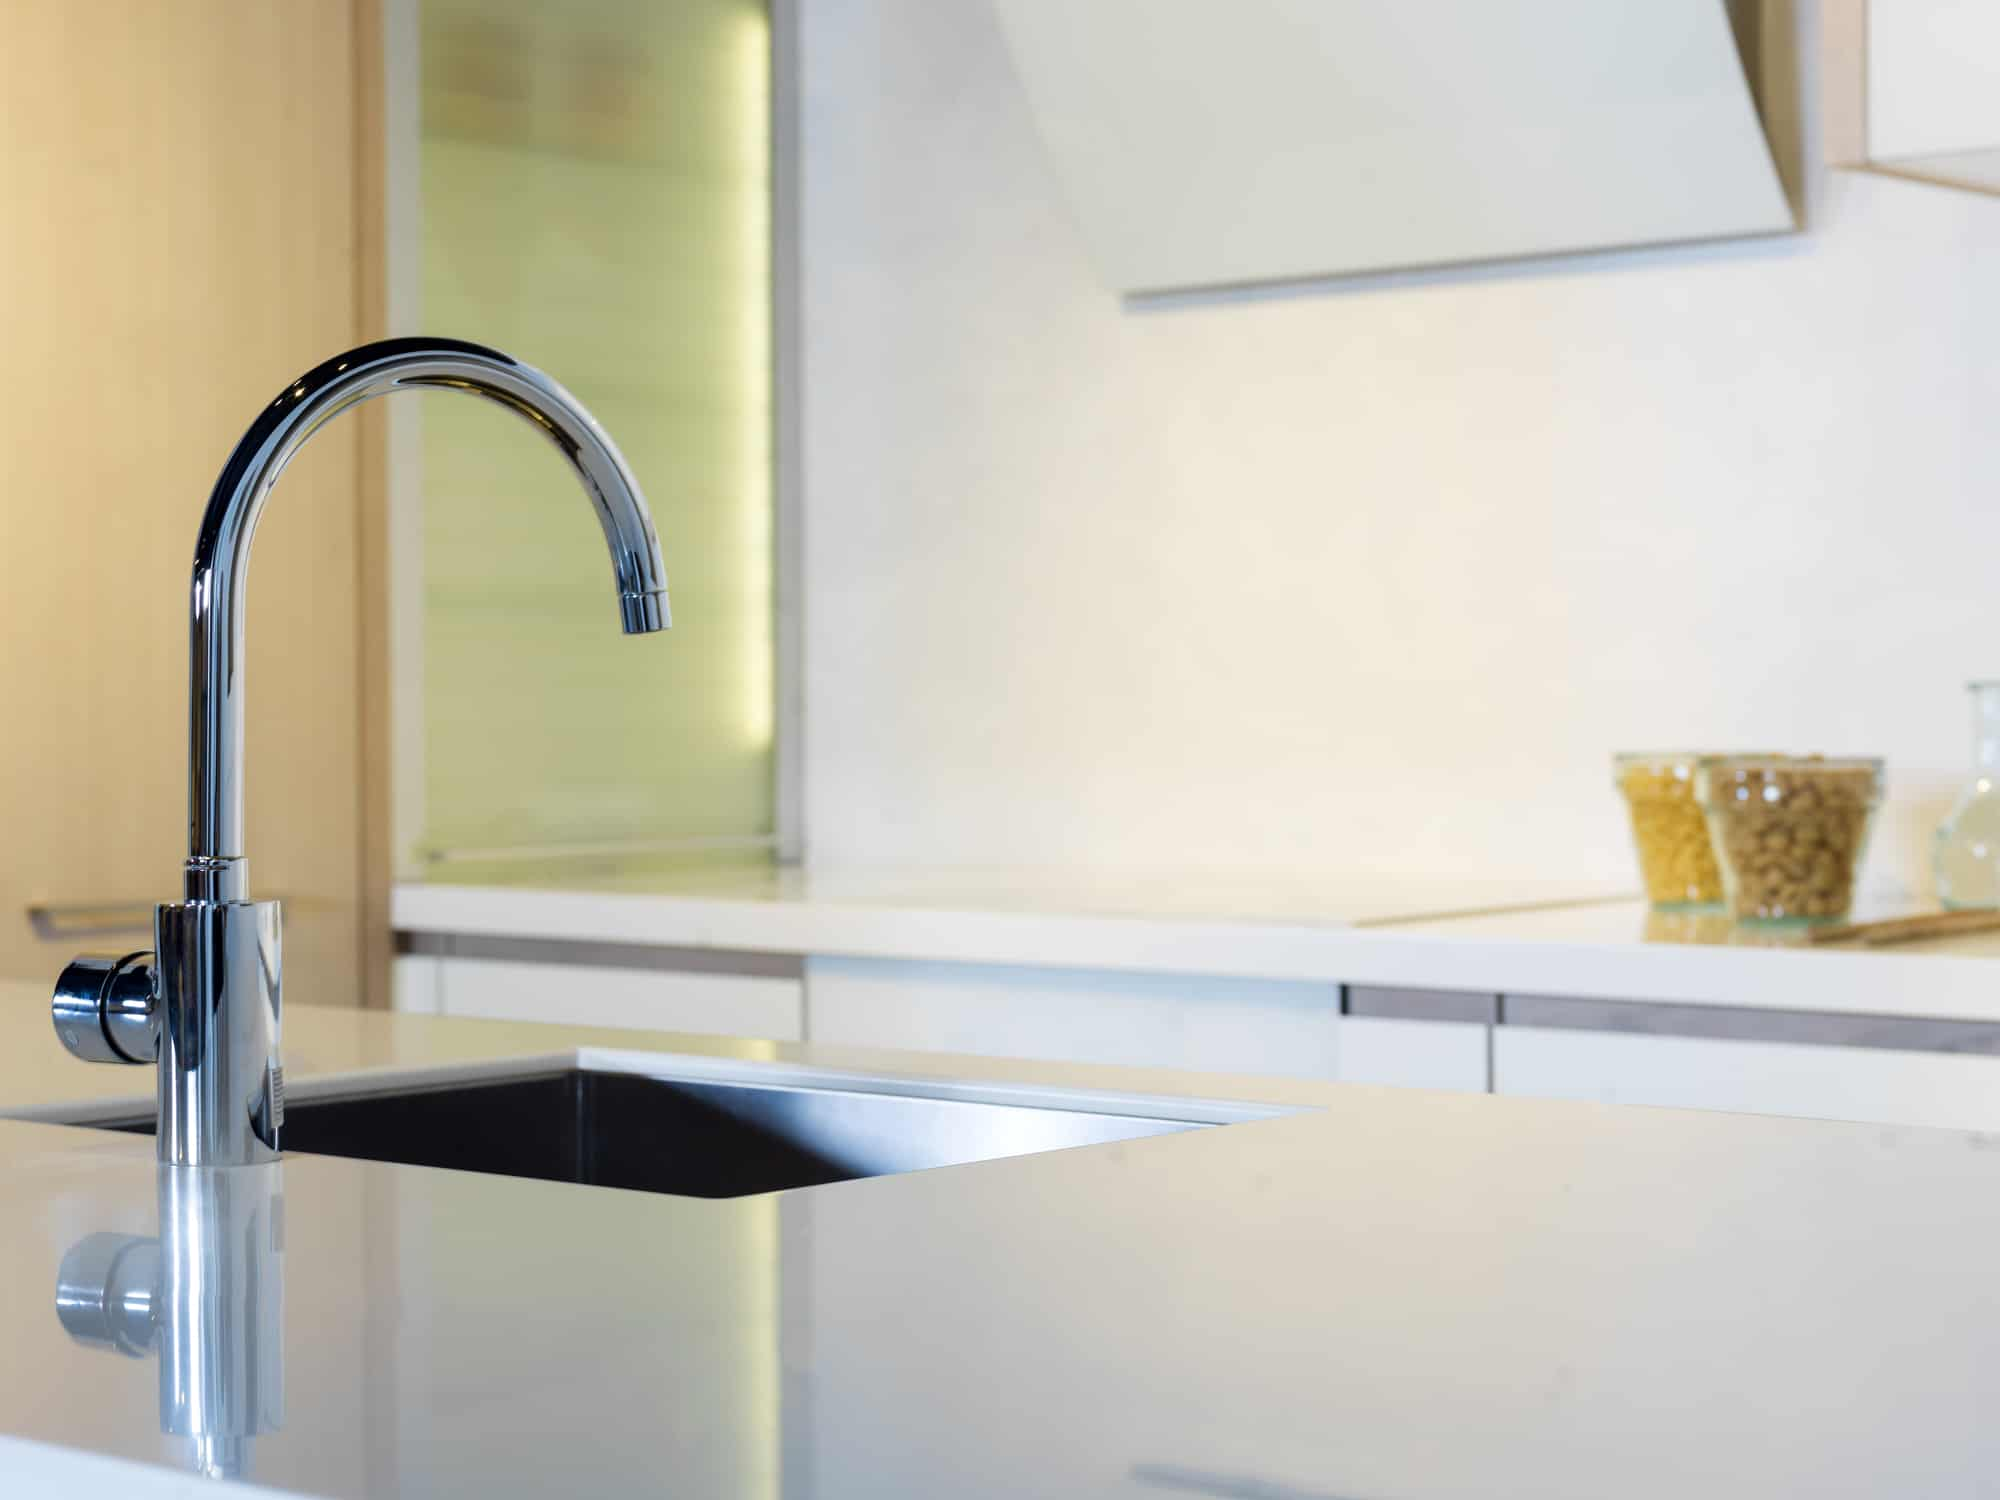 What Is The Difference Between A Kitchen Faucet And A Bar Faucet?